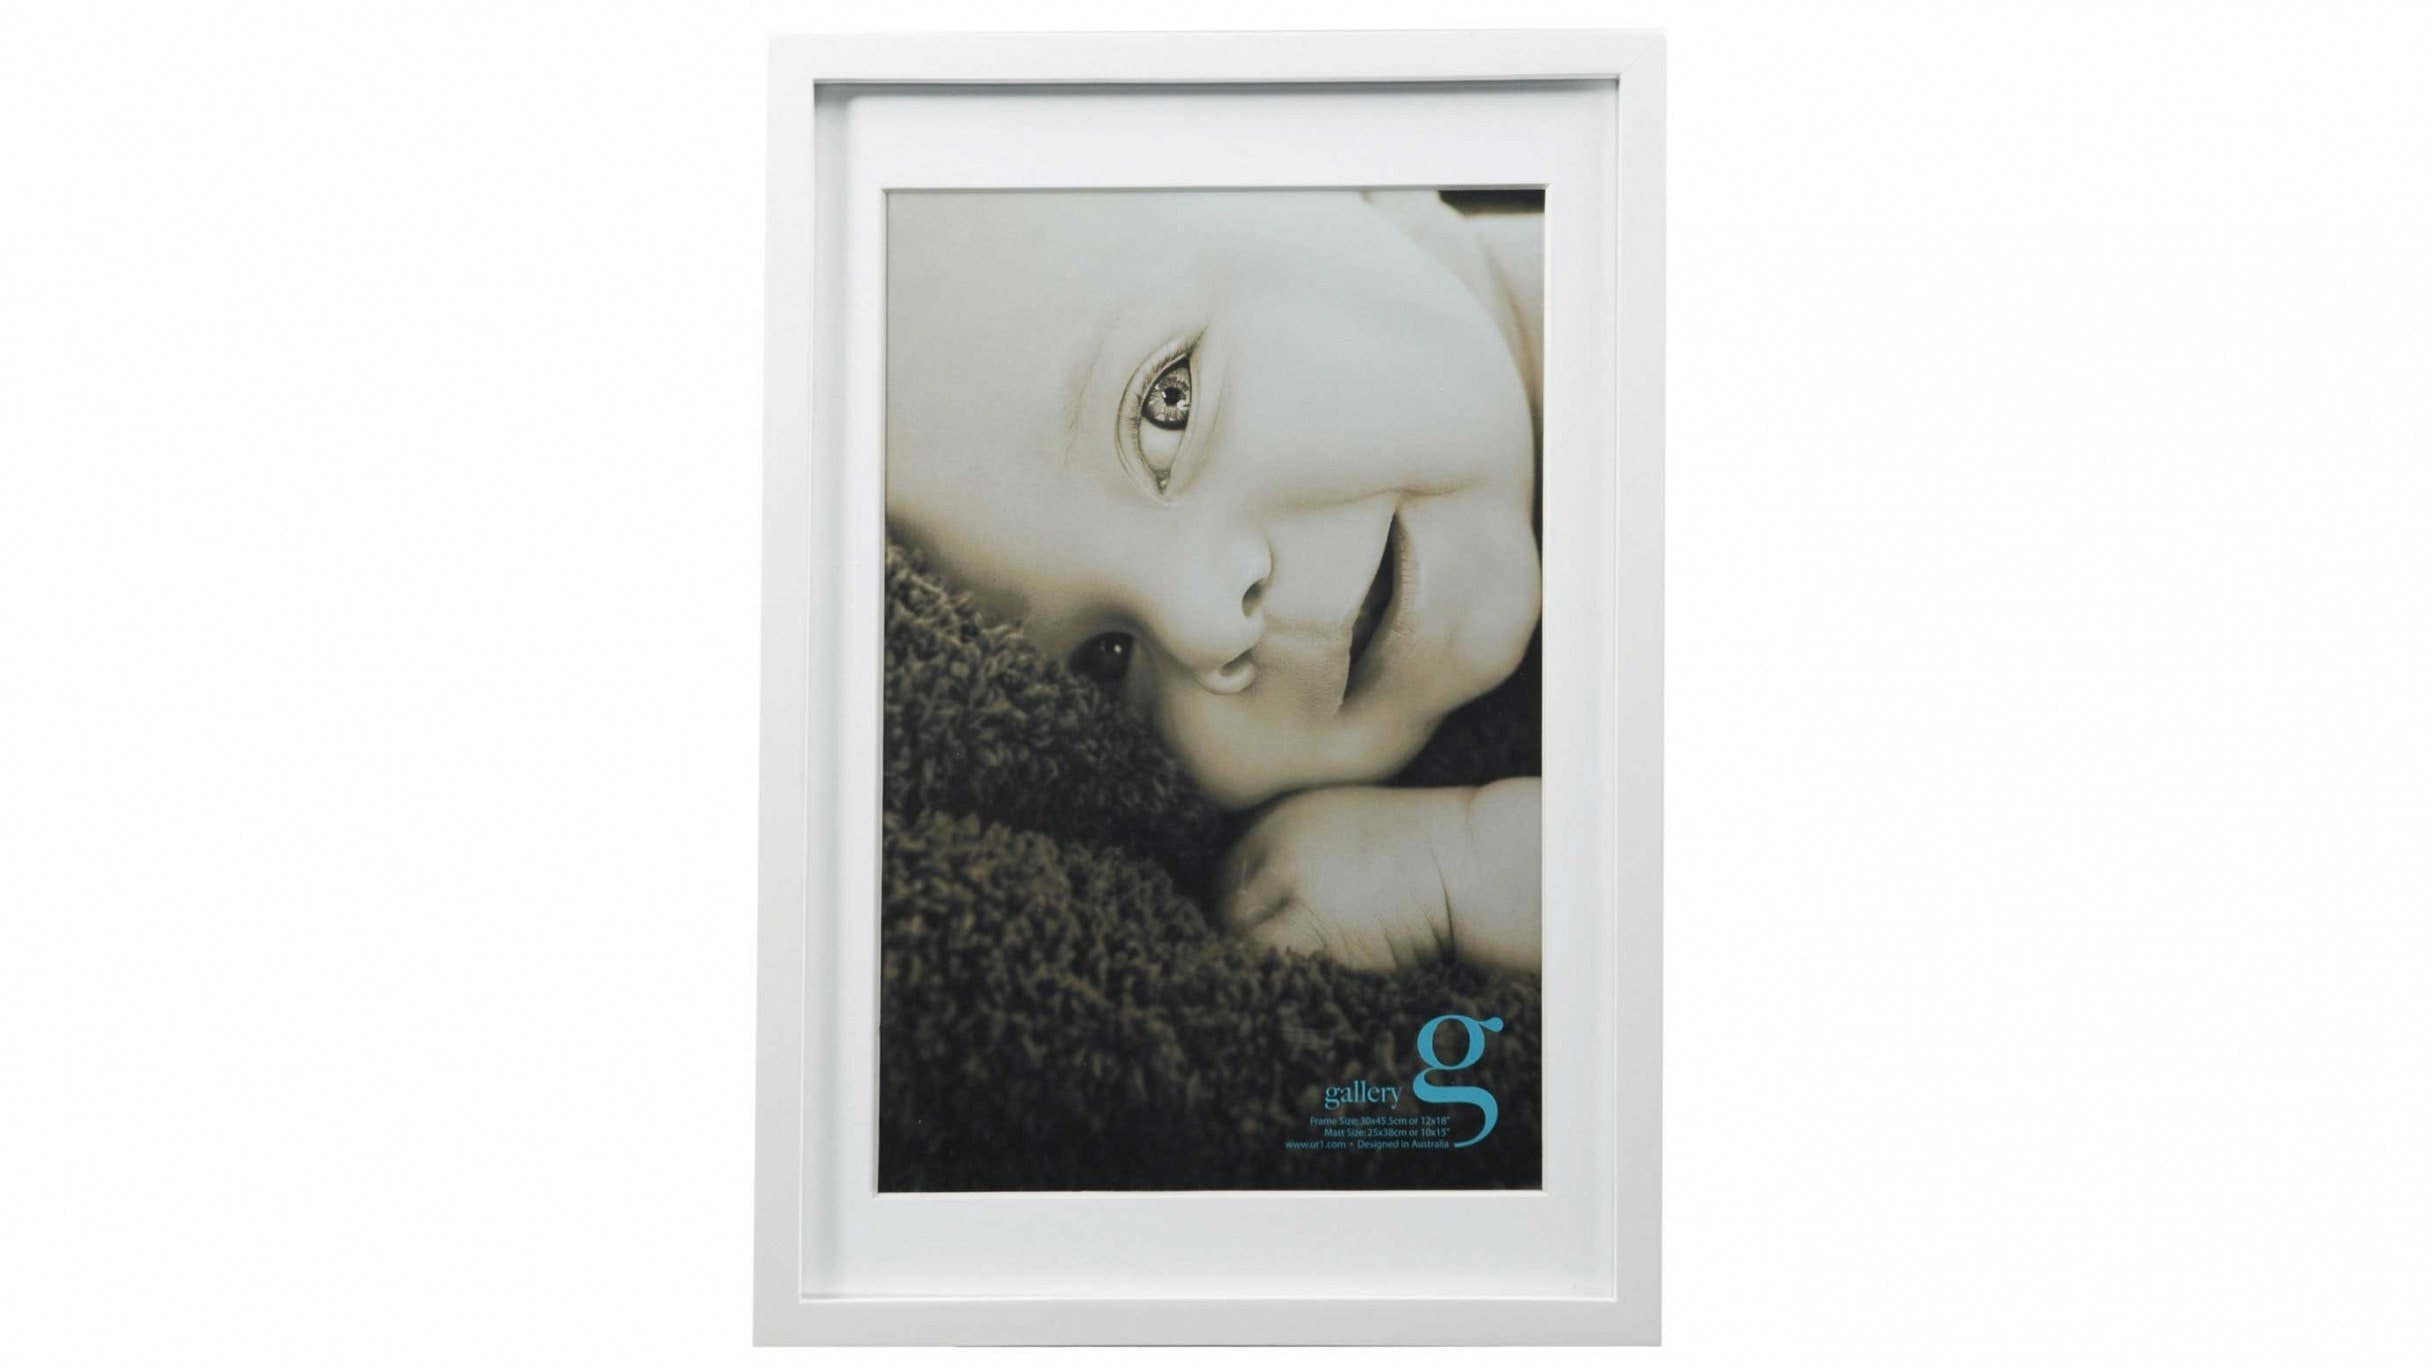 "UR1 Gallery 12""x18"" Photo Frame with 10""x15"" Opening - White"